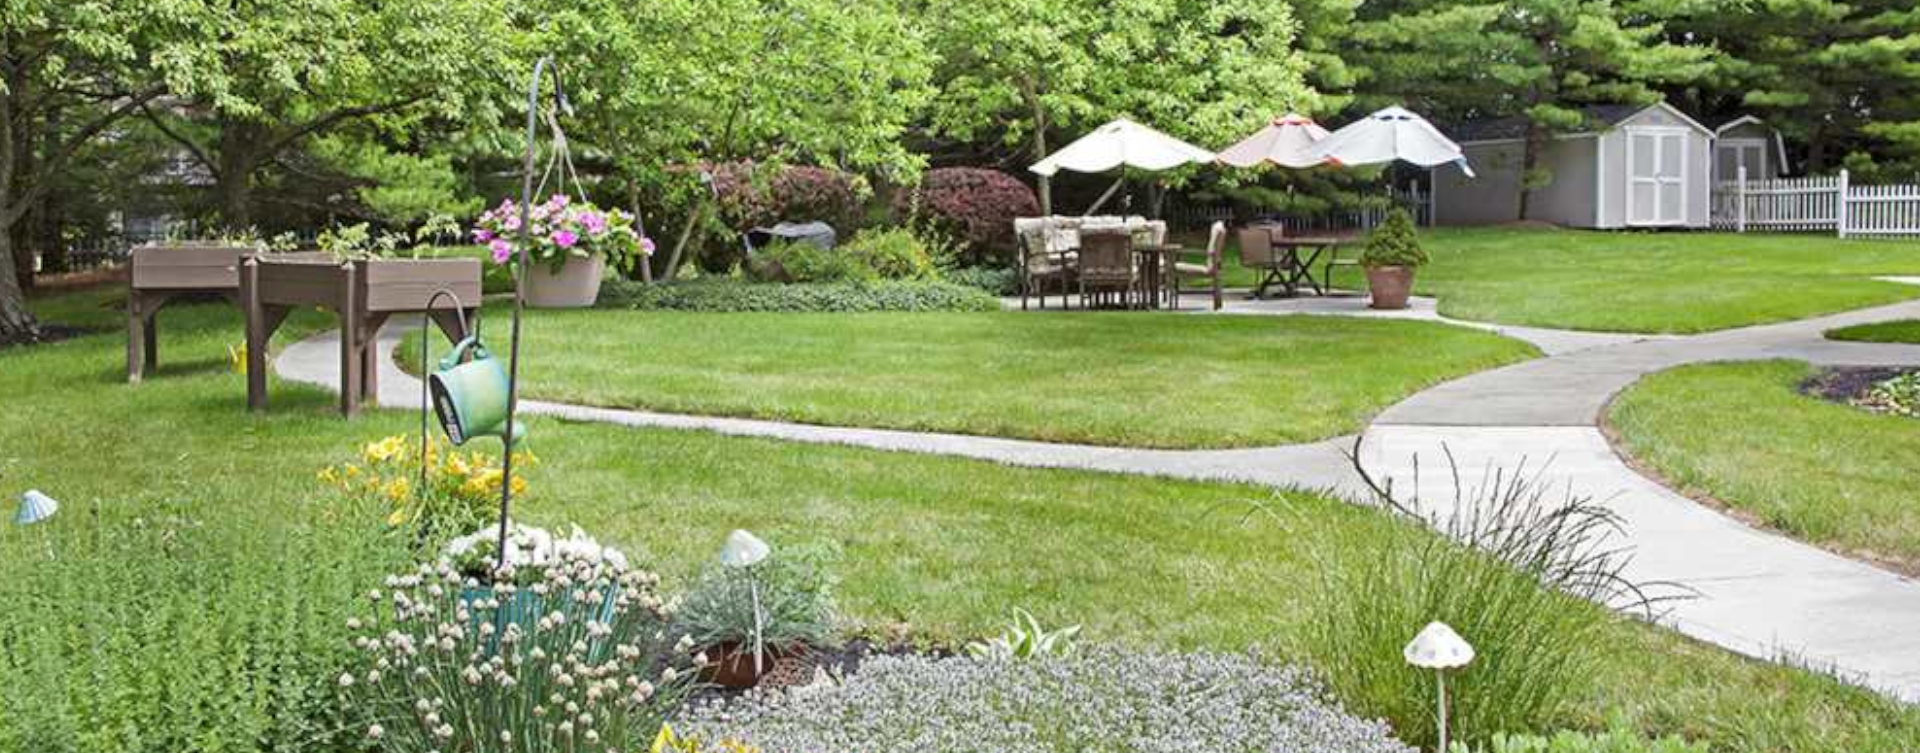 Enjoy bird watching, gardening and barbecuing in our courtyard at Bickford of Scioto